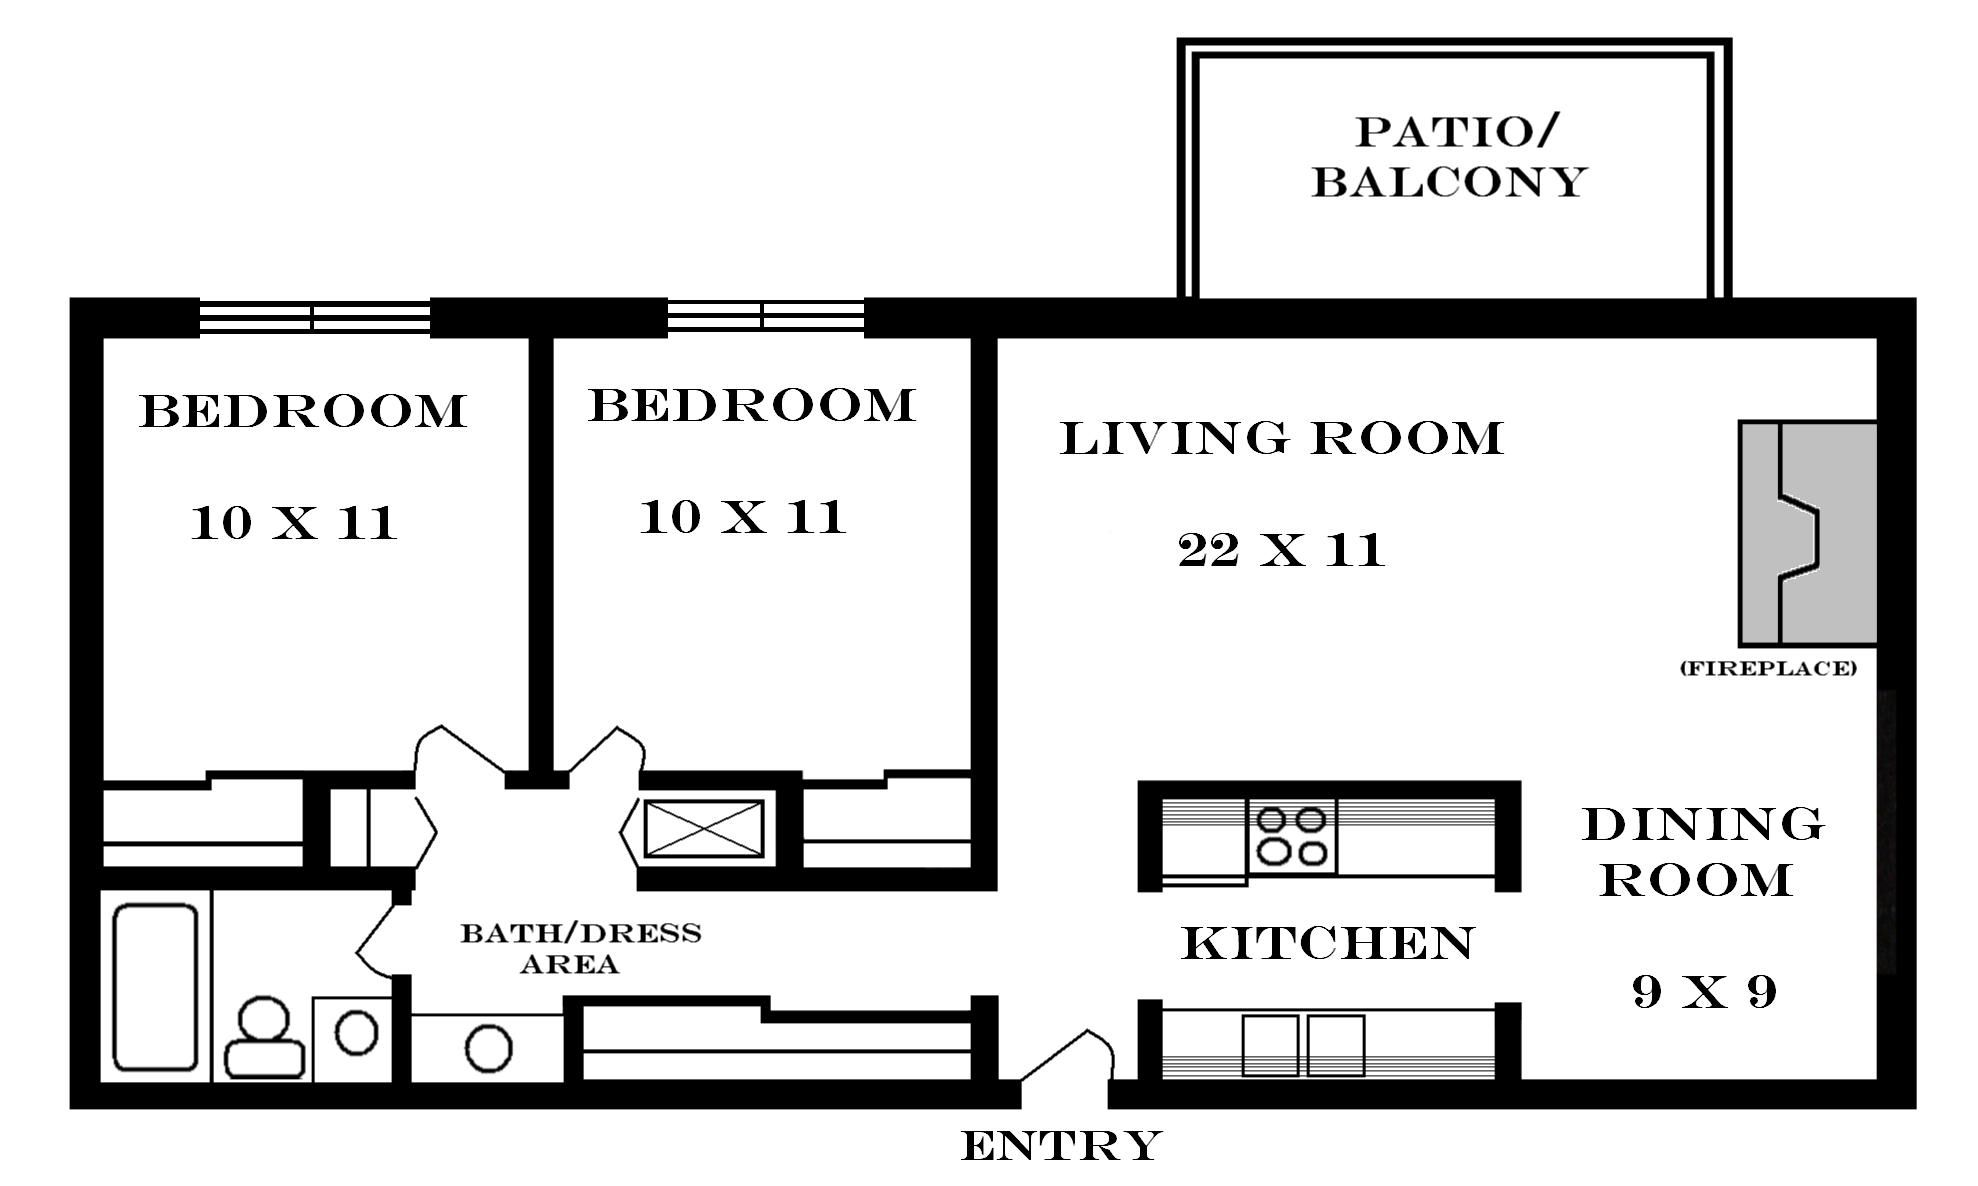 Decoration Small Two Bedroom Apartment Floor Plans Plan Nice  Gallery at Layout Square Foot Tiny House As Well Sq Ft For Homes